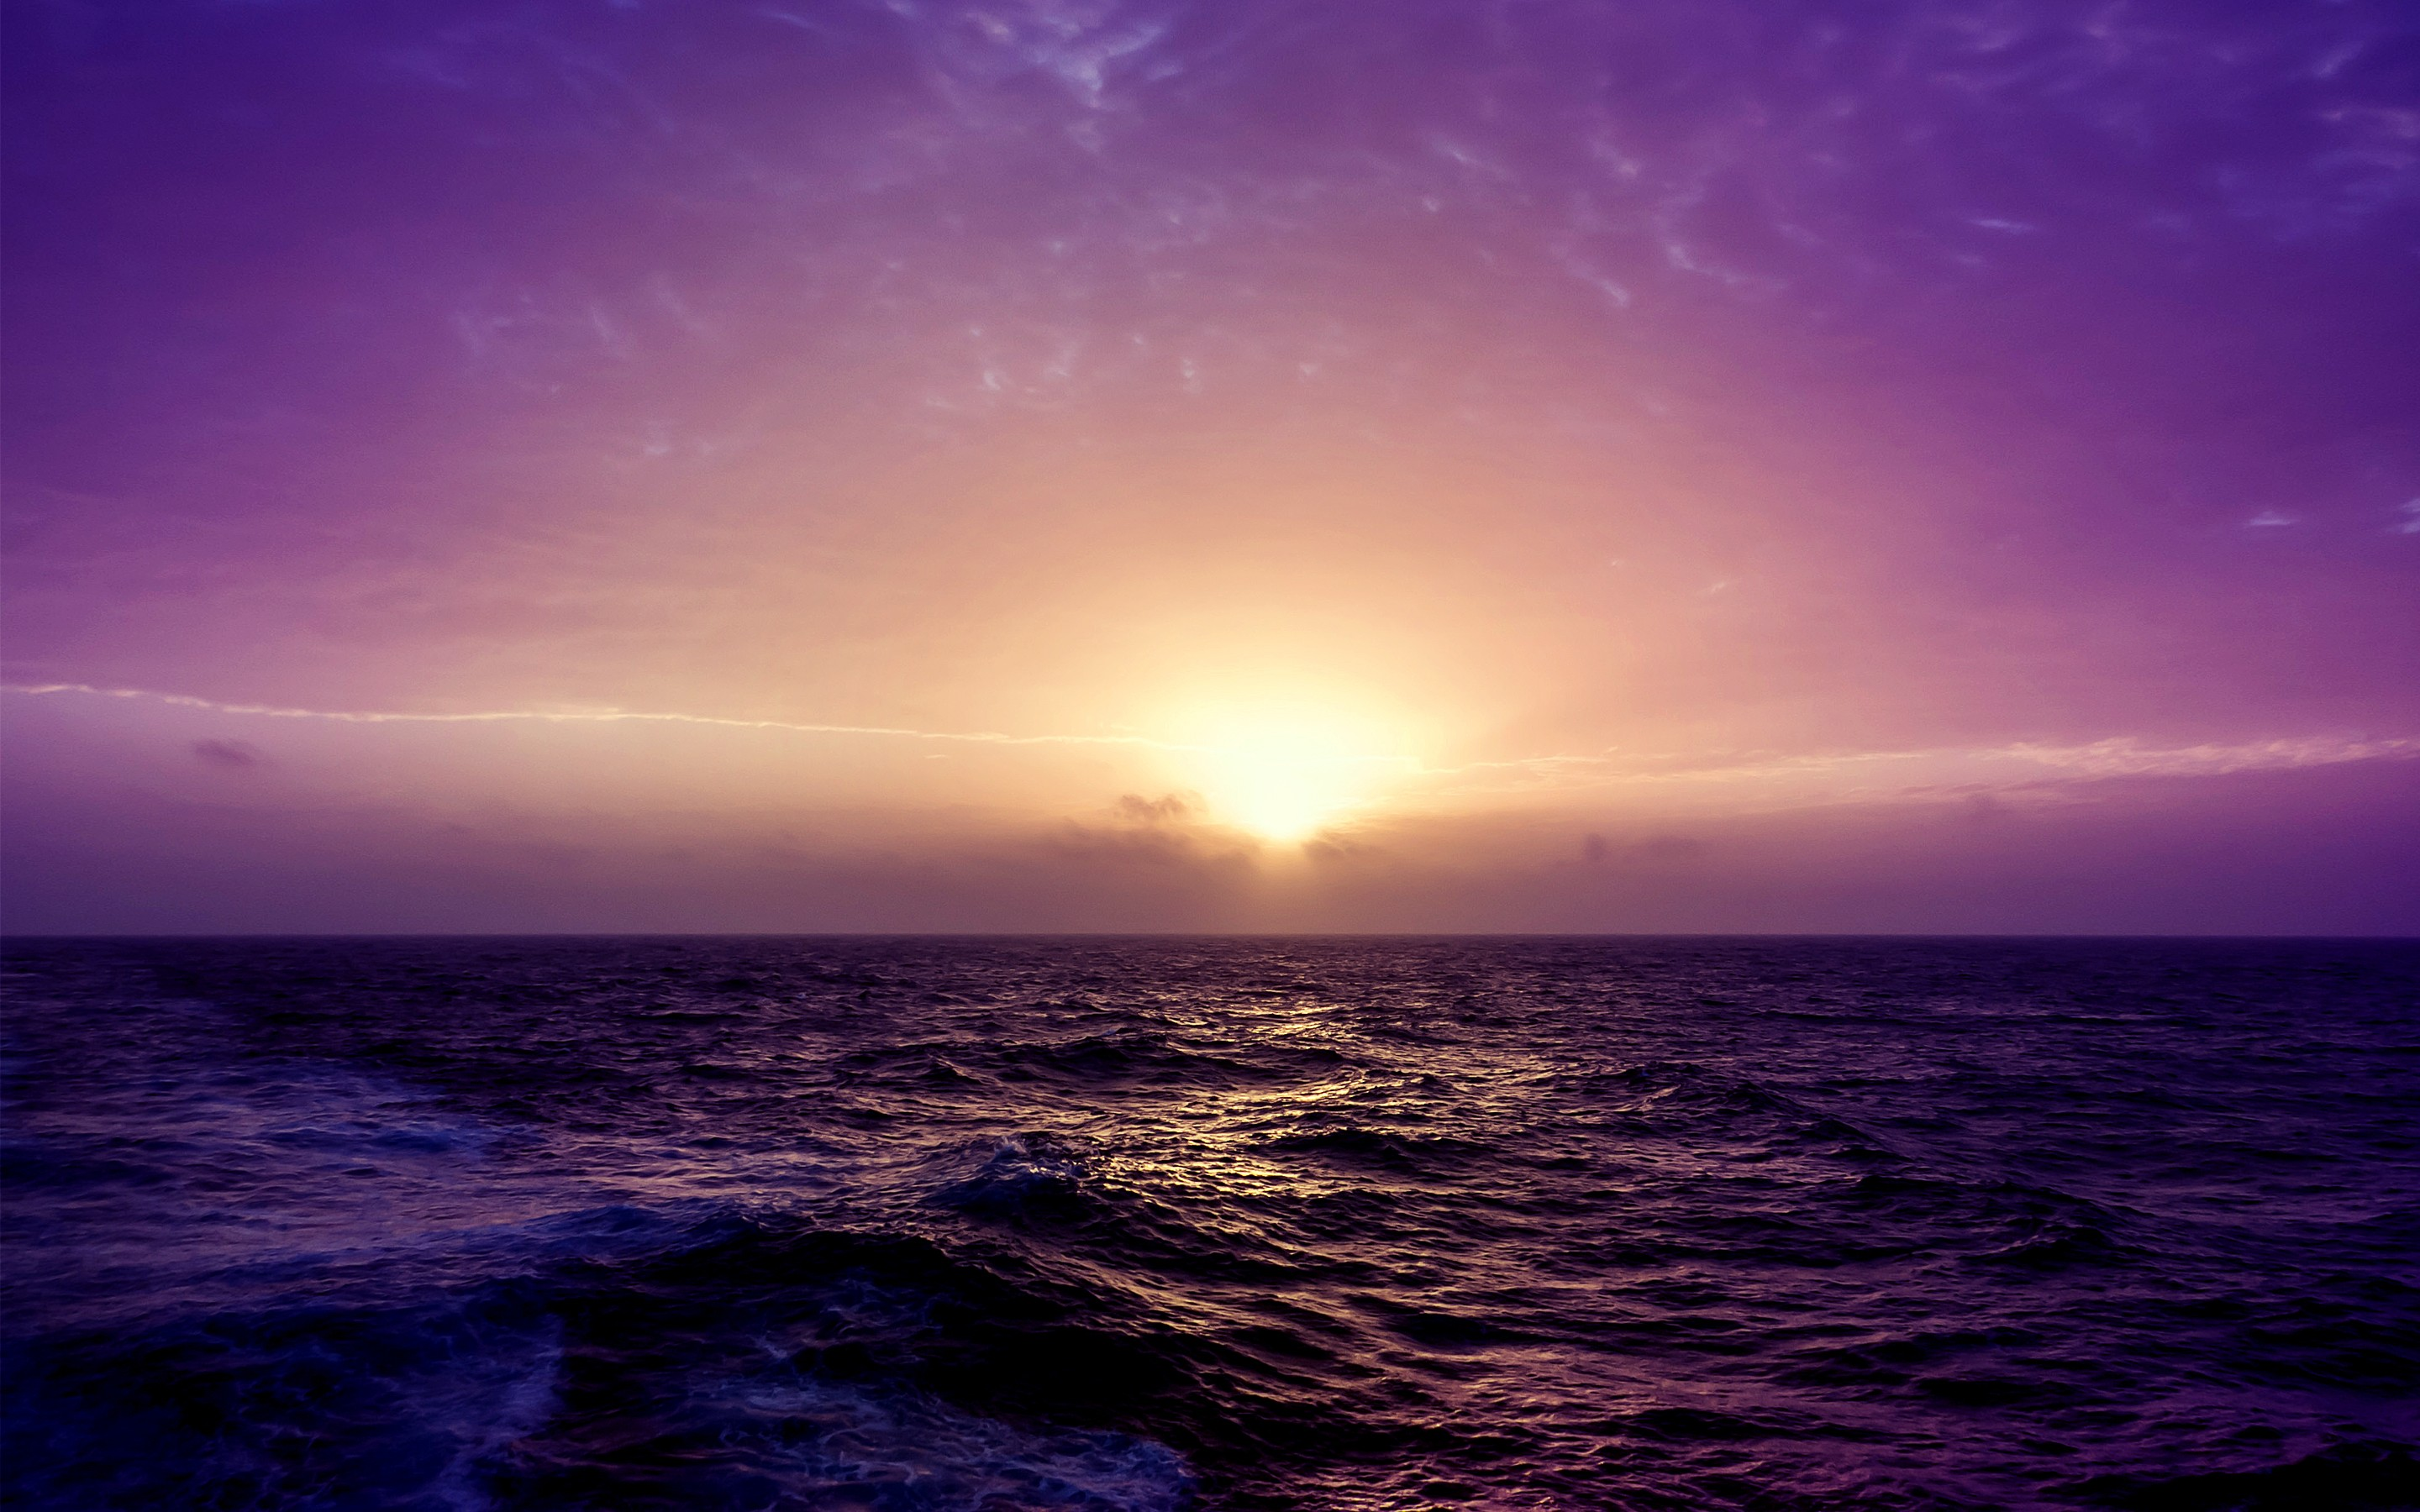 Purple Sea Sunset Wallpapers  HD Wallpapers  ID 14809